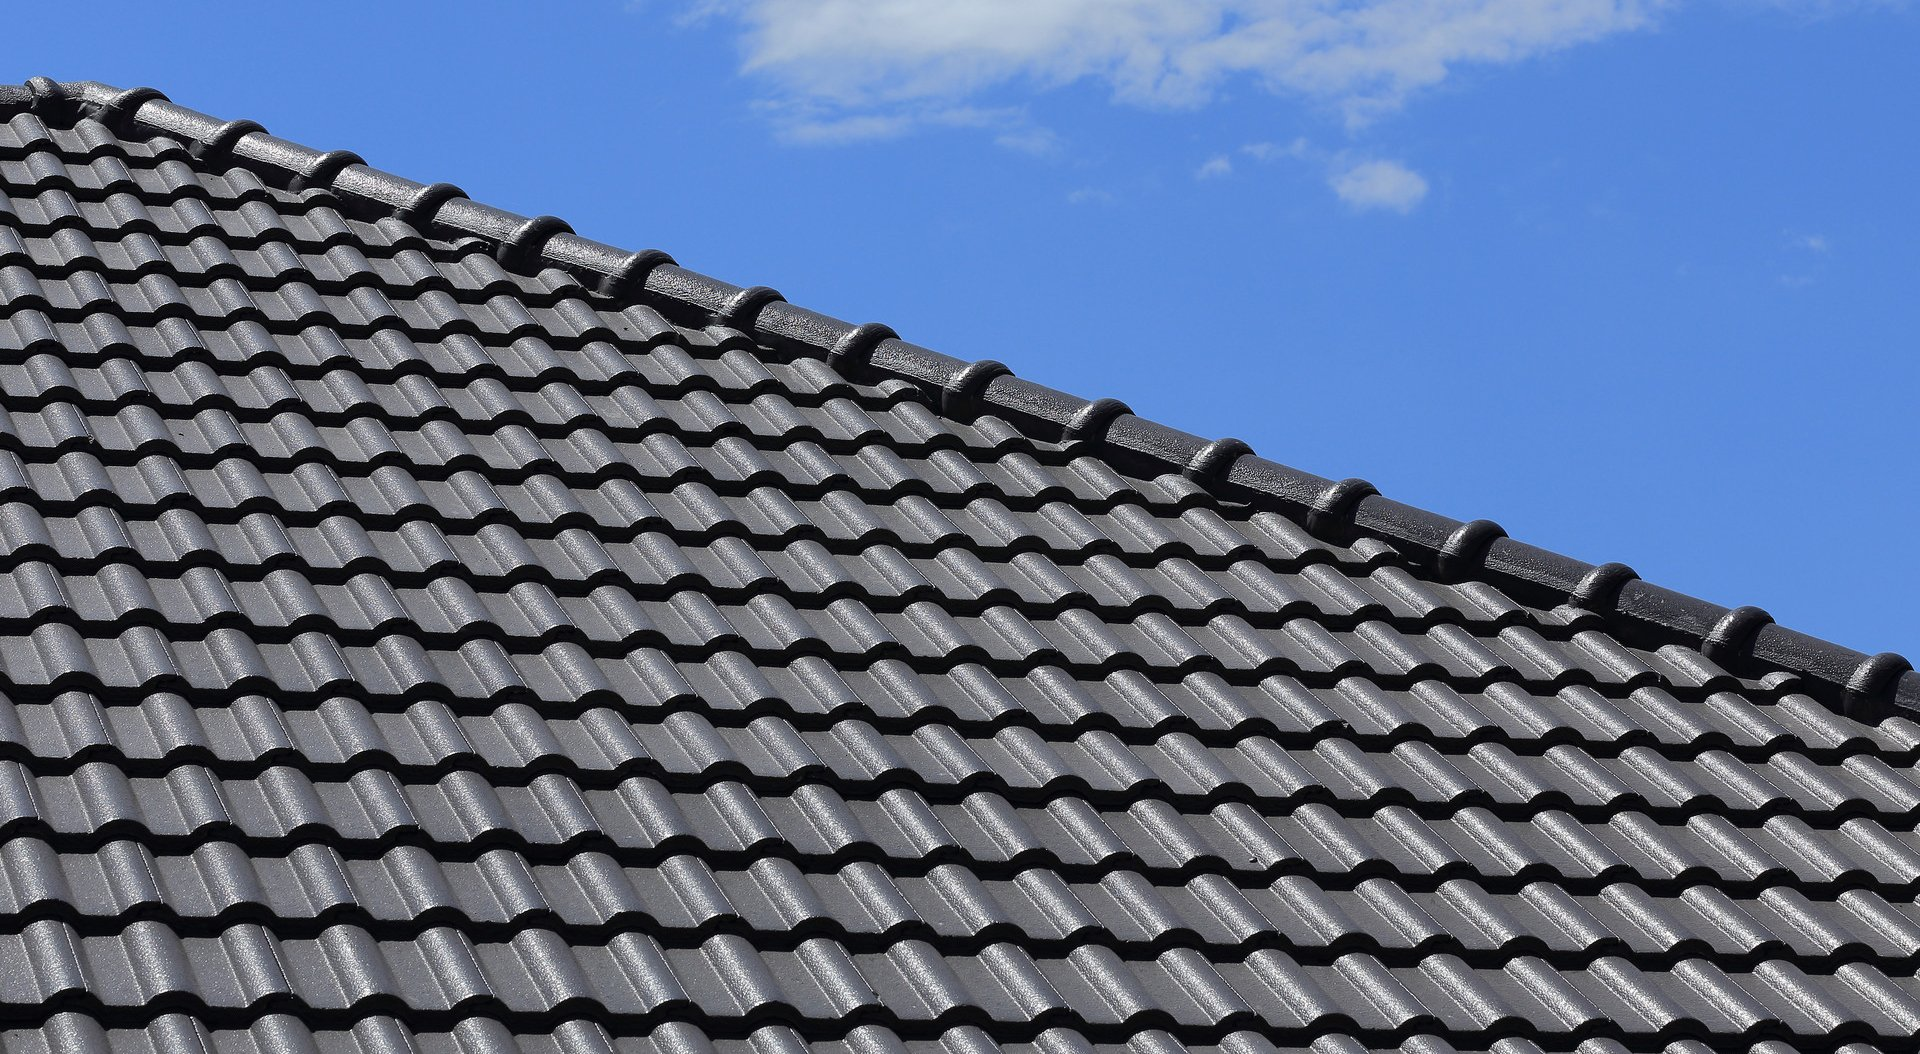 grey stoned roof tiles